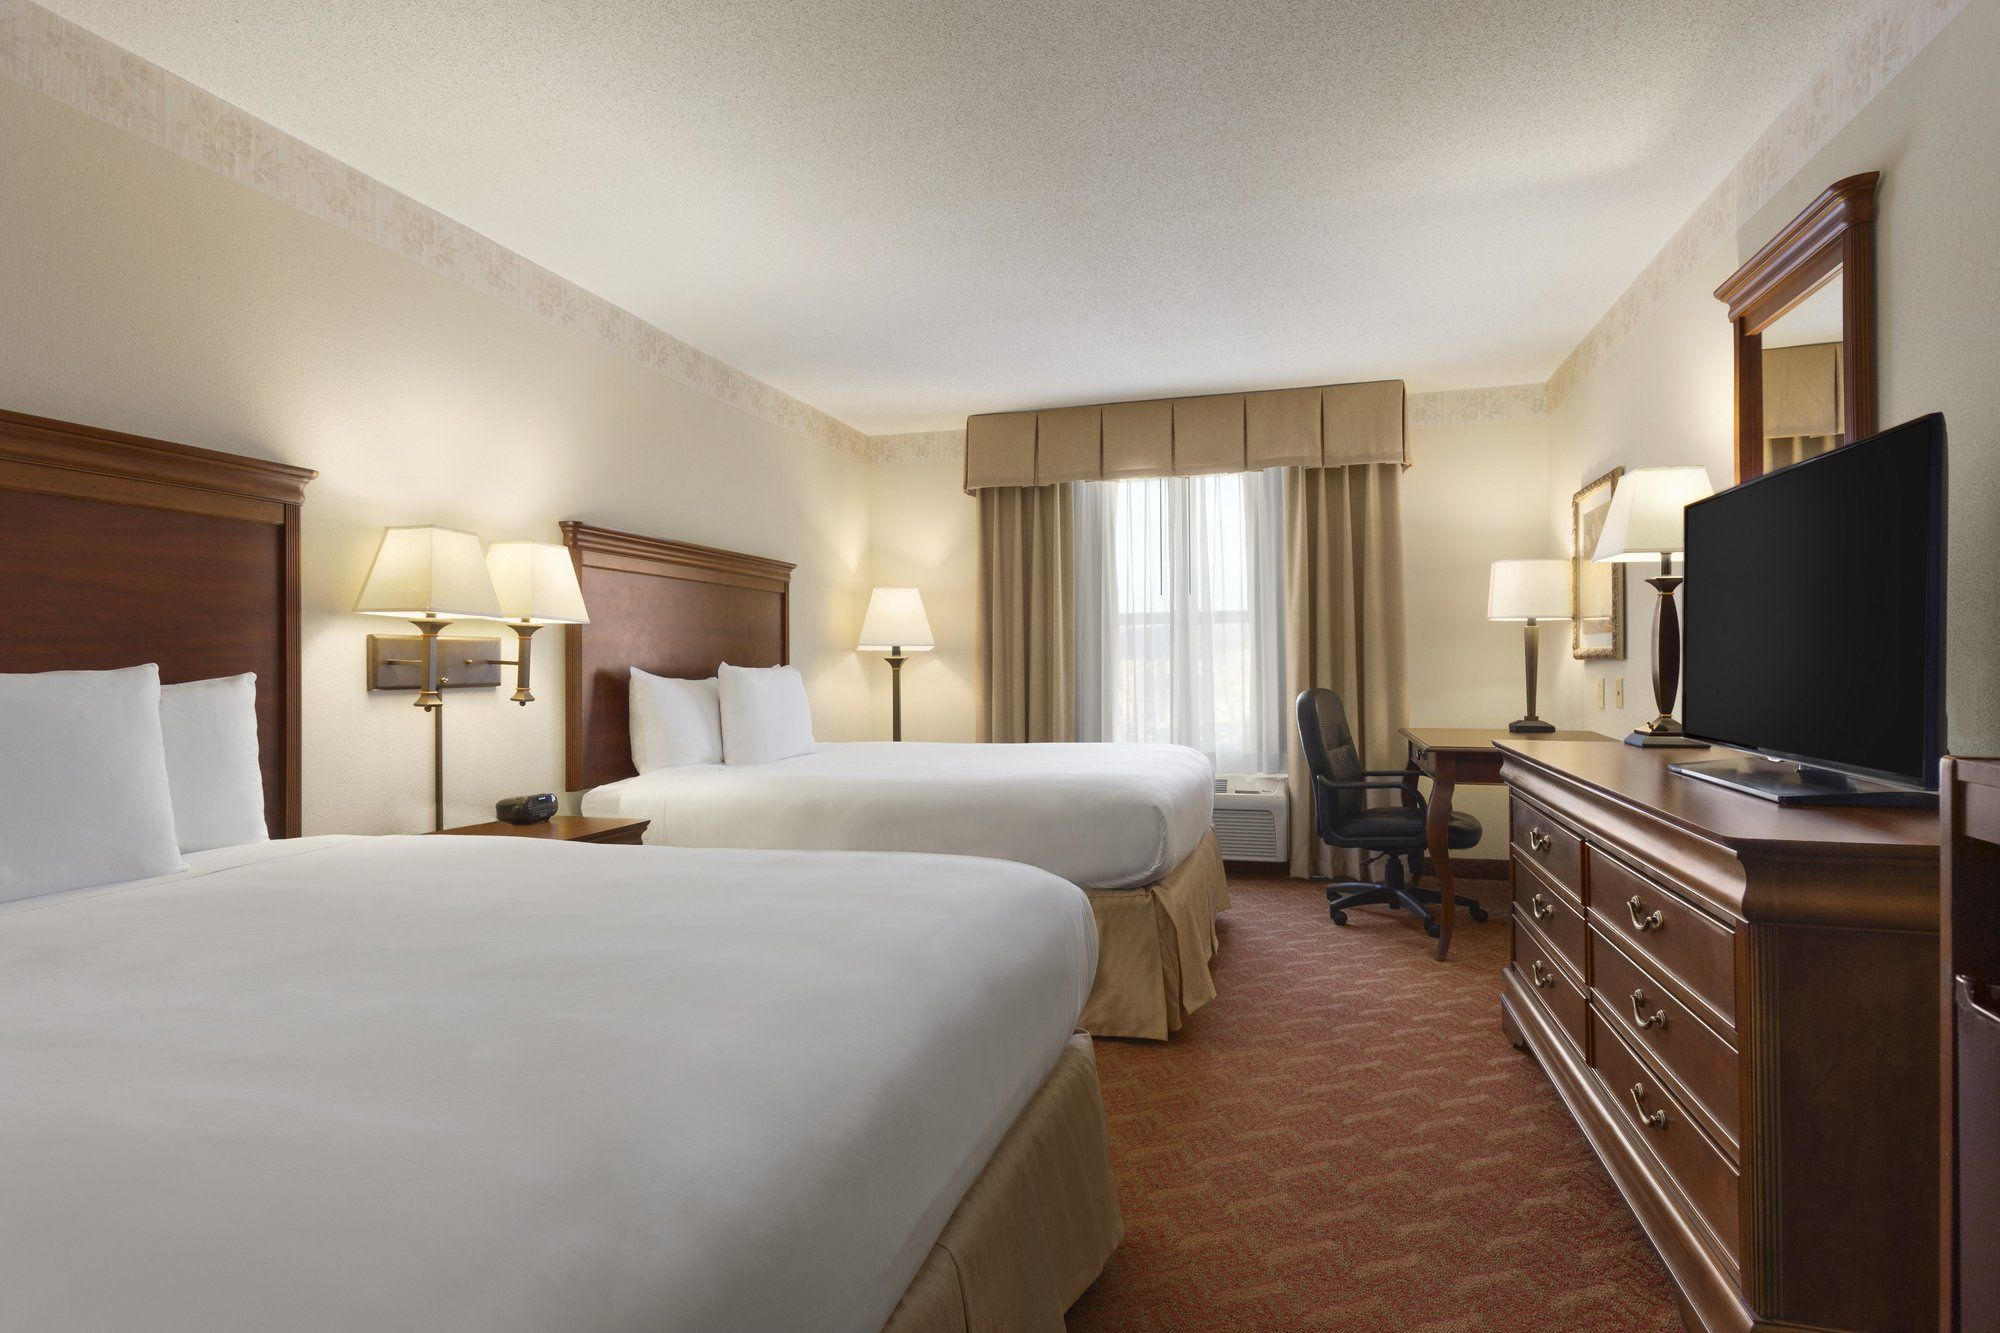 Country Inn & Suites by Carlson, Potomac Mills Woodbridge VA